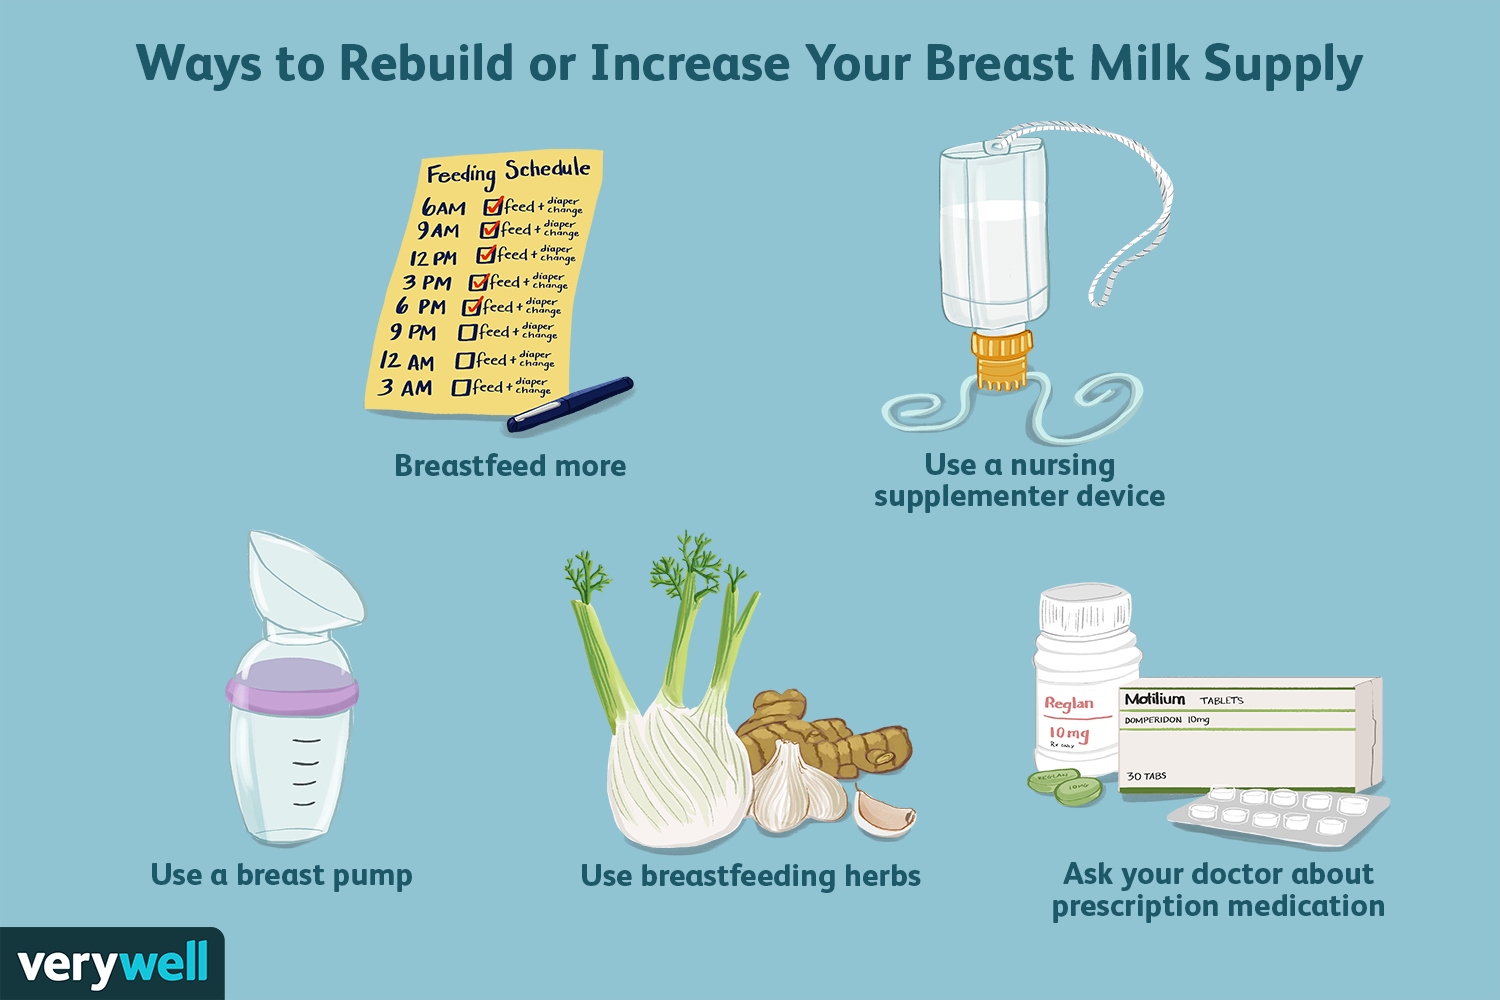 How To Rebuild Or Increase Your Breast Milk Supply